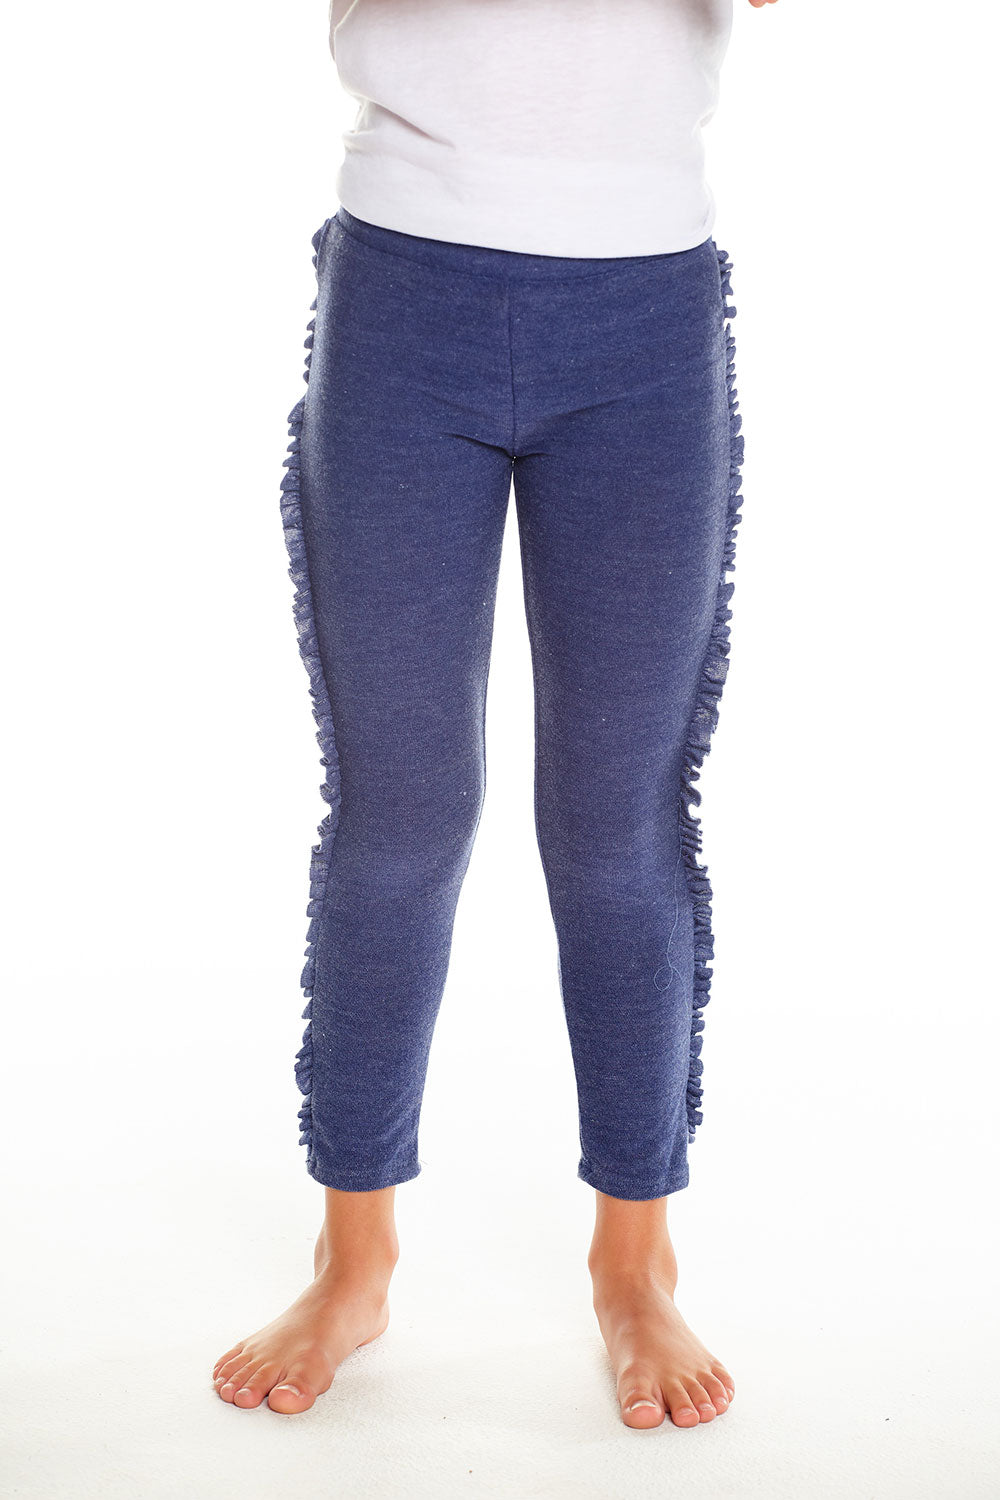 Cozy Knit Ruffle Side Leggings, GIRLS, chaserbrand.com,chaser clothing,chaser apparel,chaser los angeles